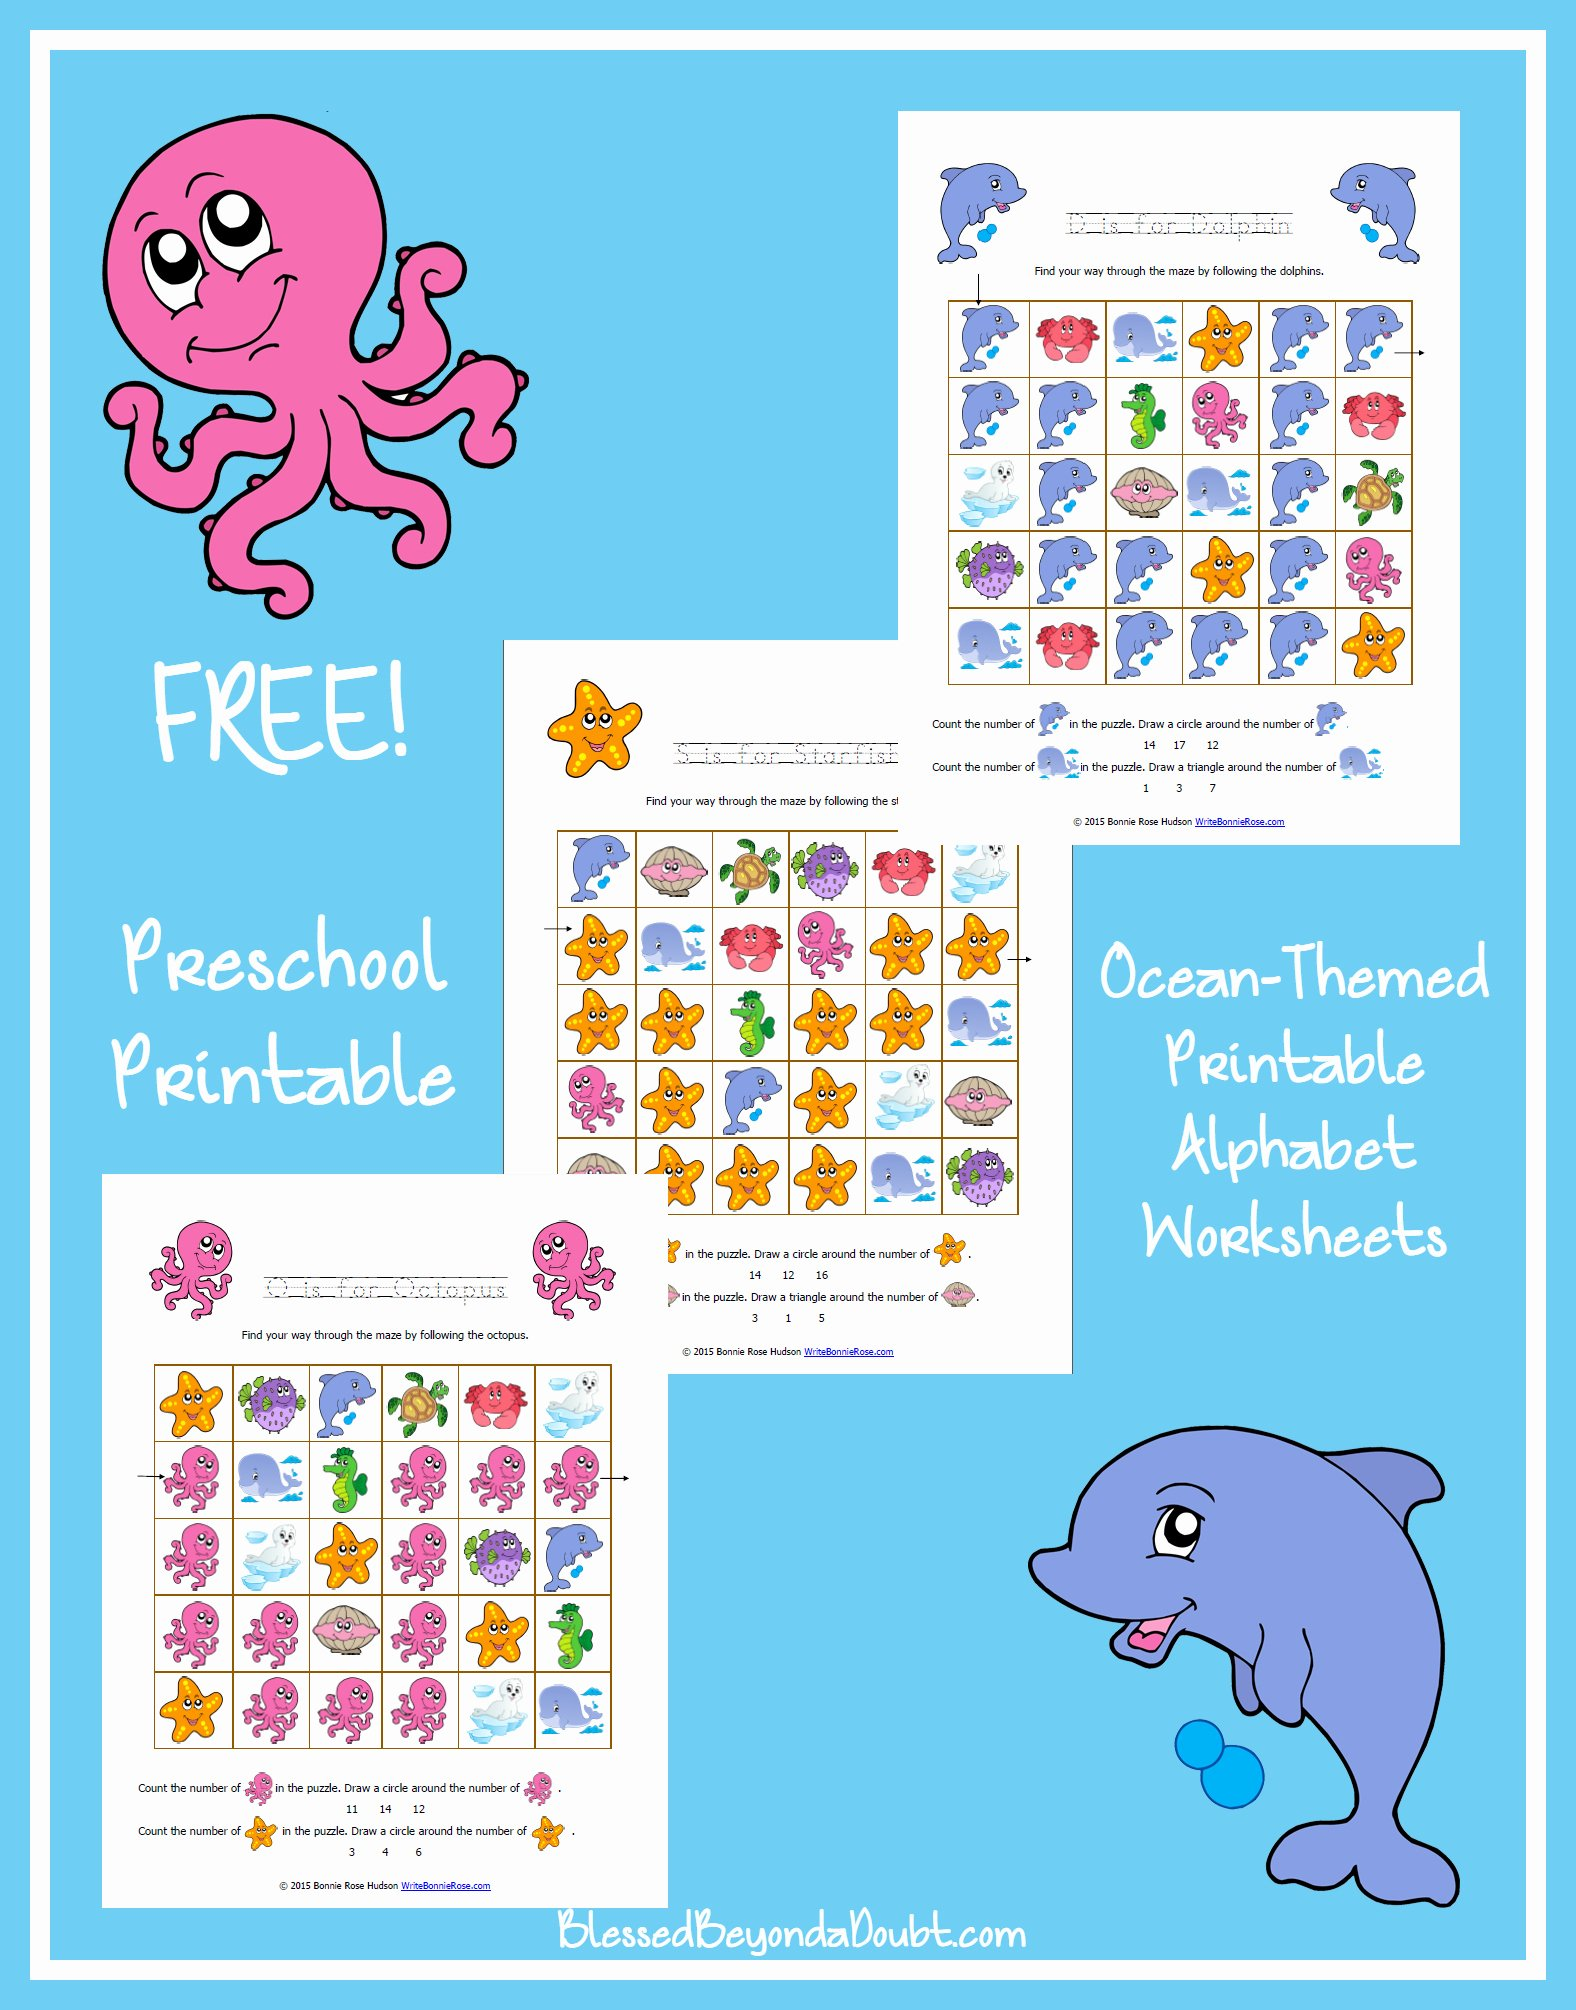 Ocean Themed Worksheets For Preschoolers